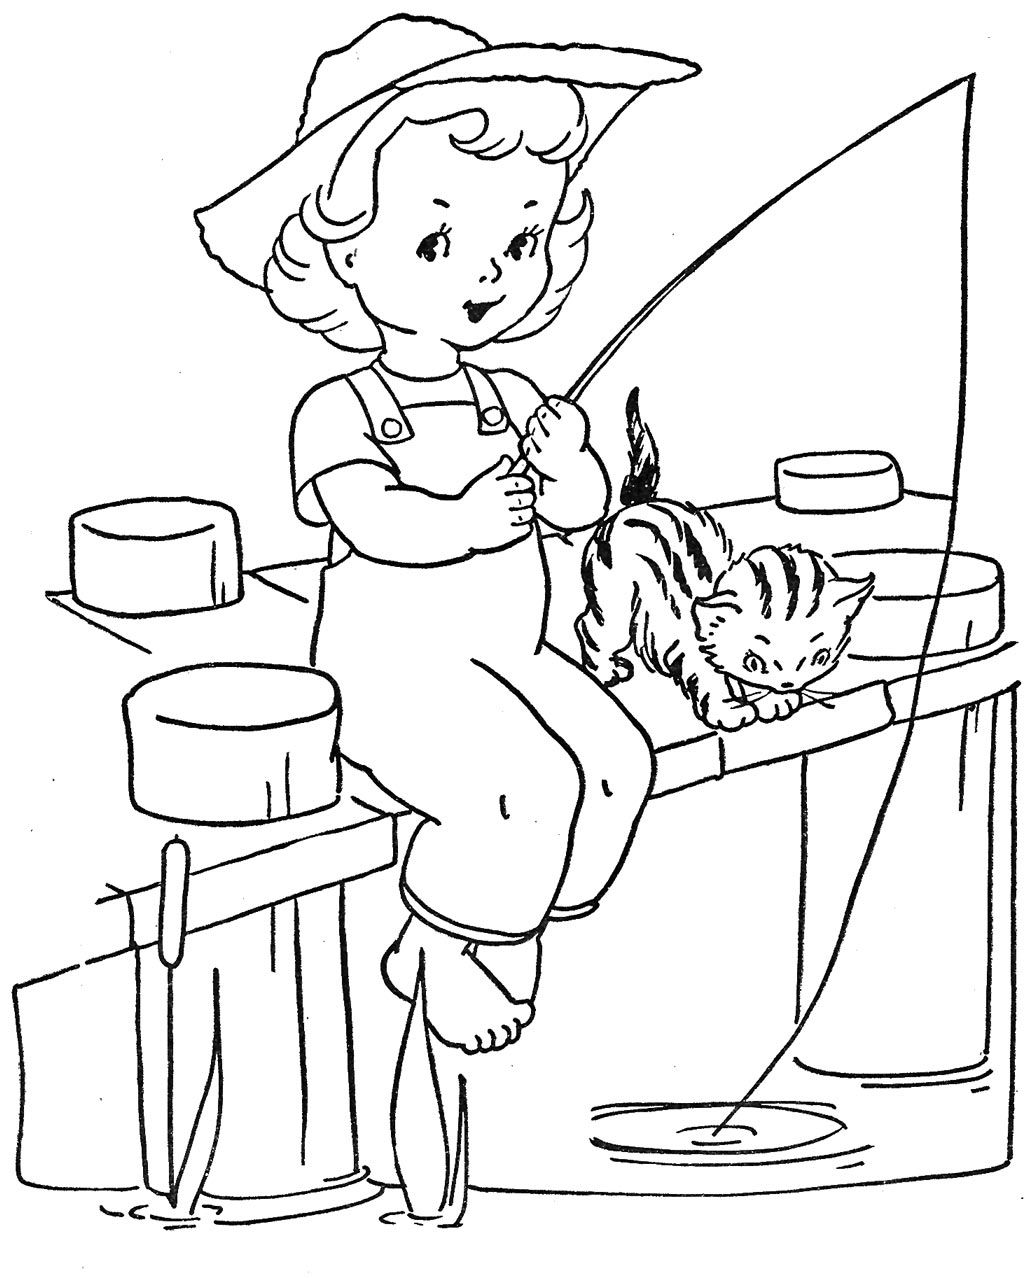 coloring pages for little girls little girl fishing coloring pages google search little girls pages coloring for